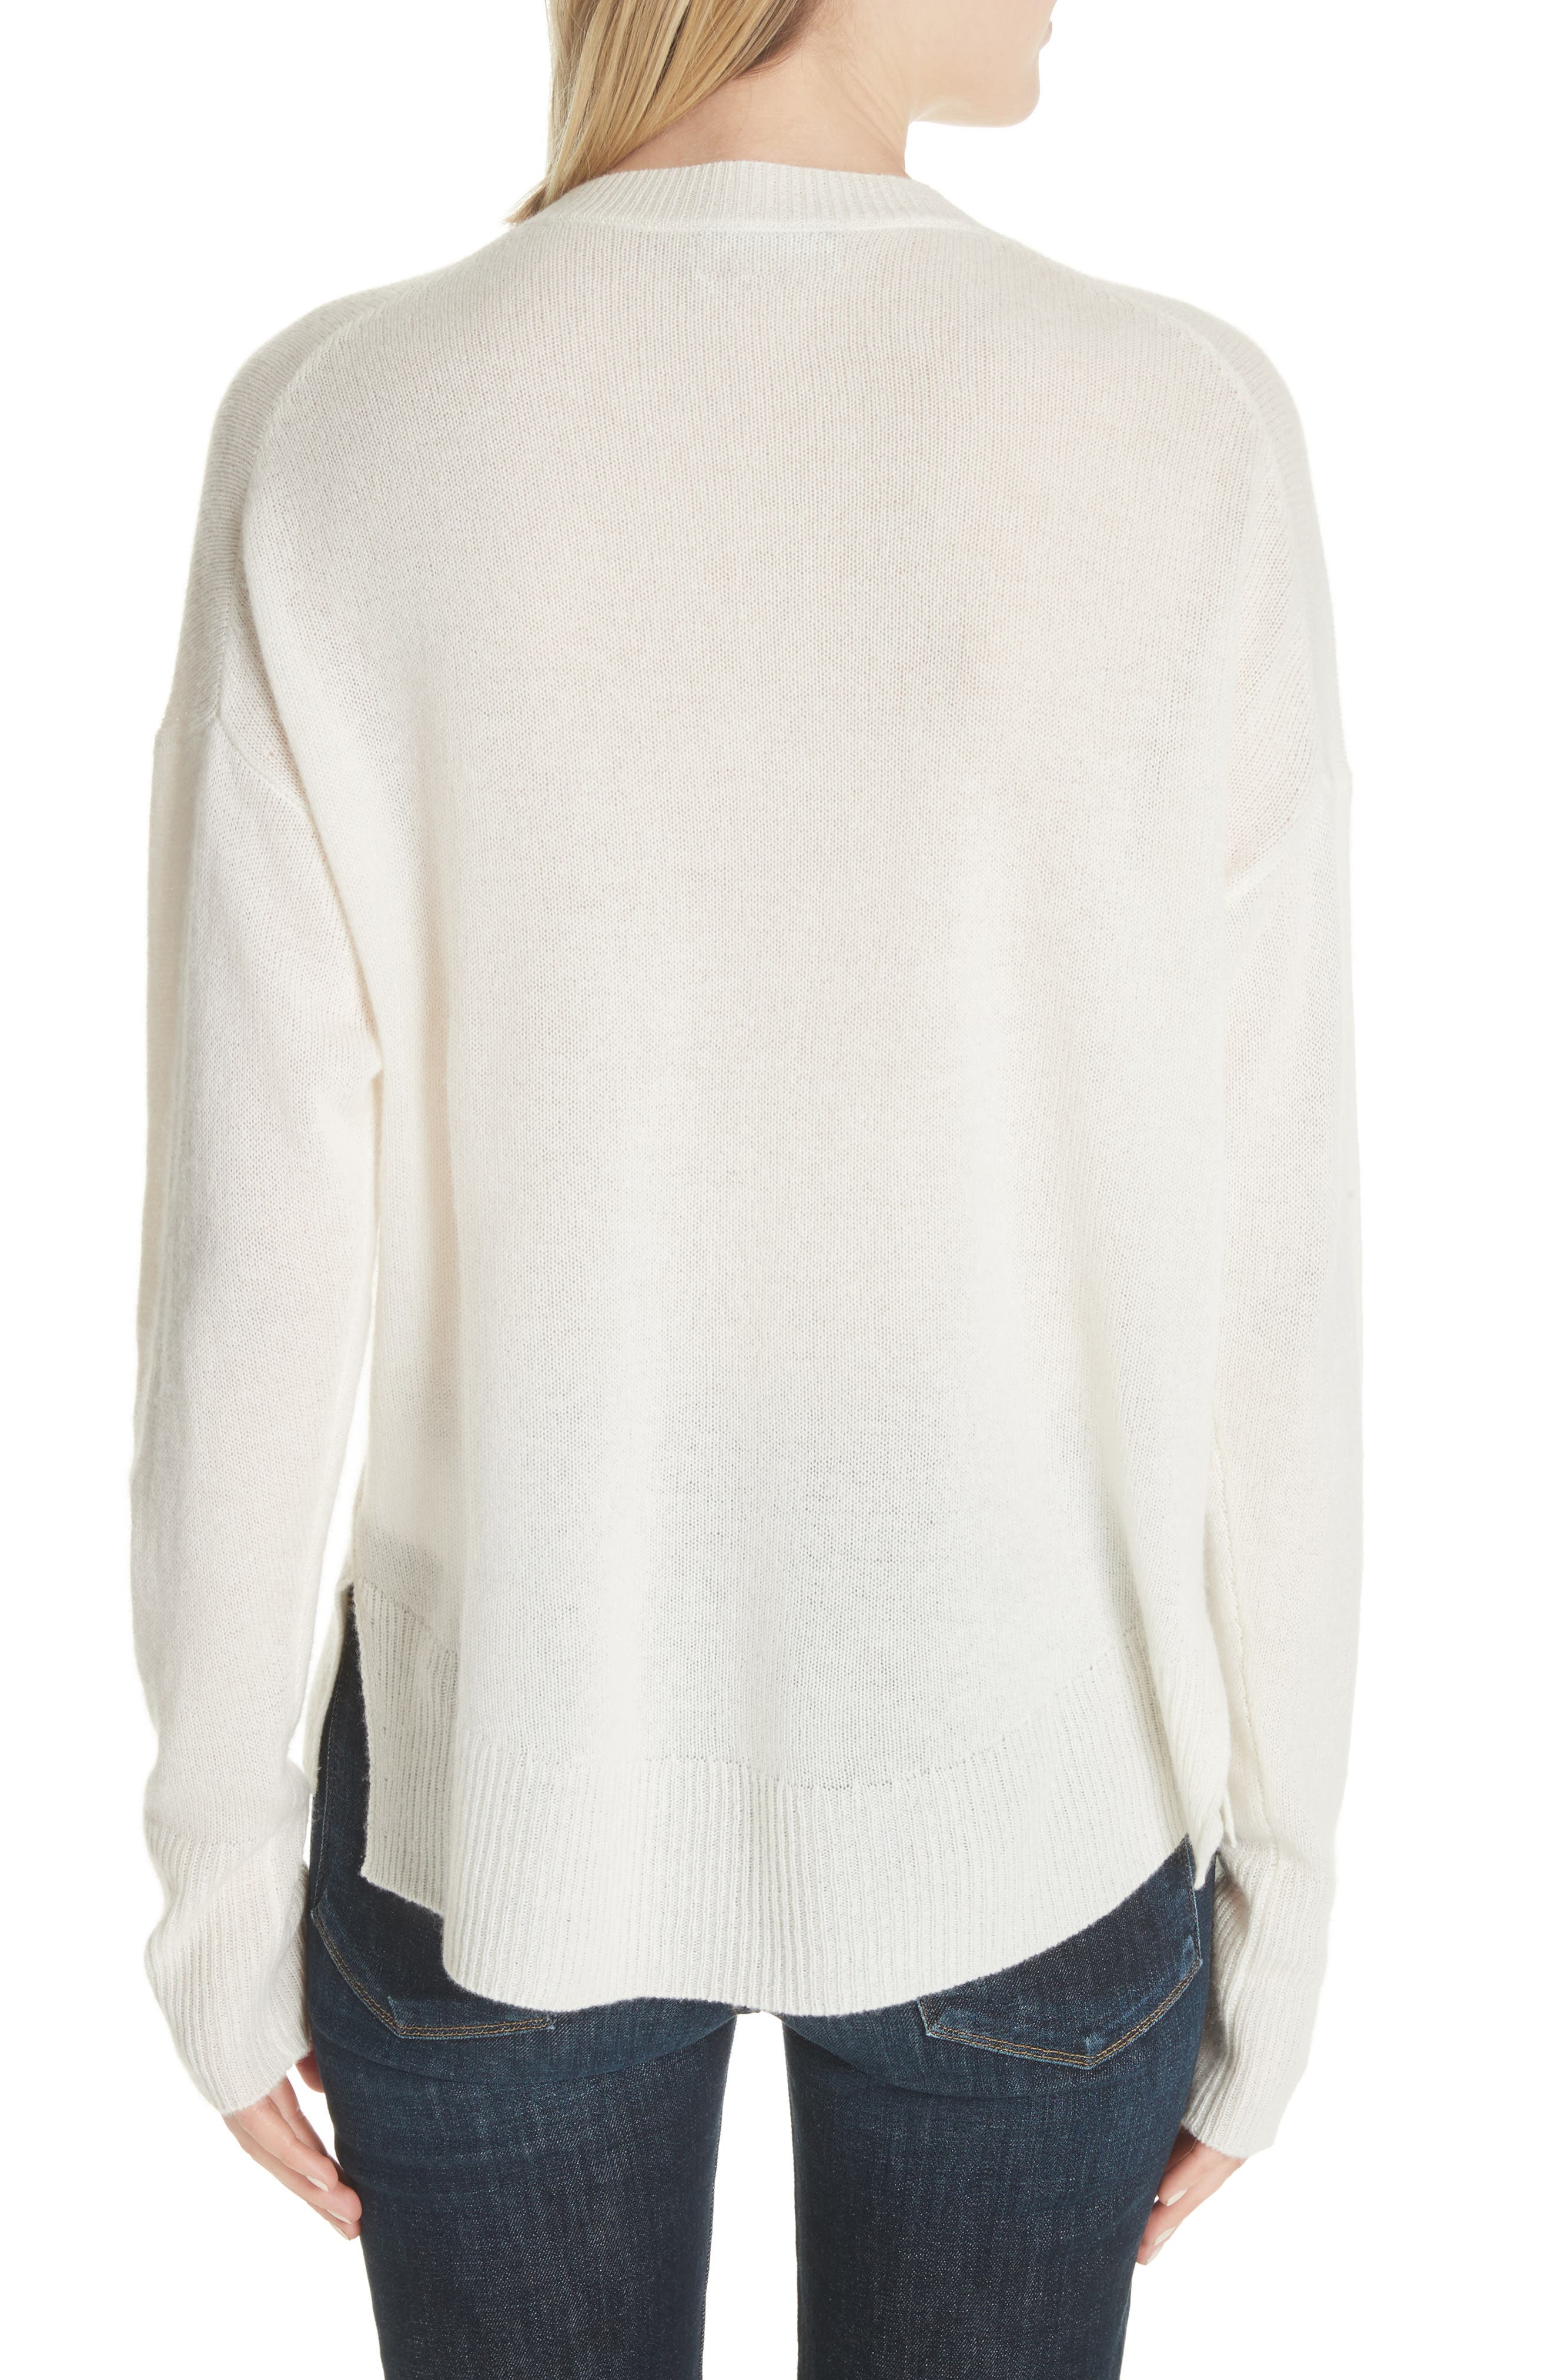 Karenia L Cashmere Sweater,                             Alternate thumbnail 2, color,                             Ivory